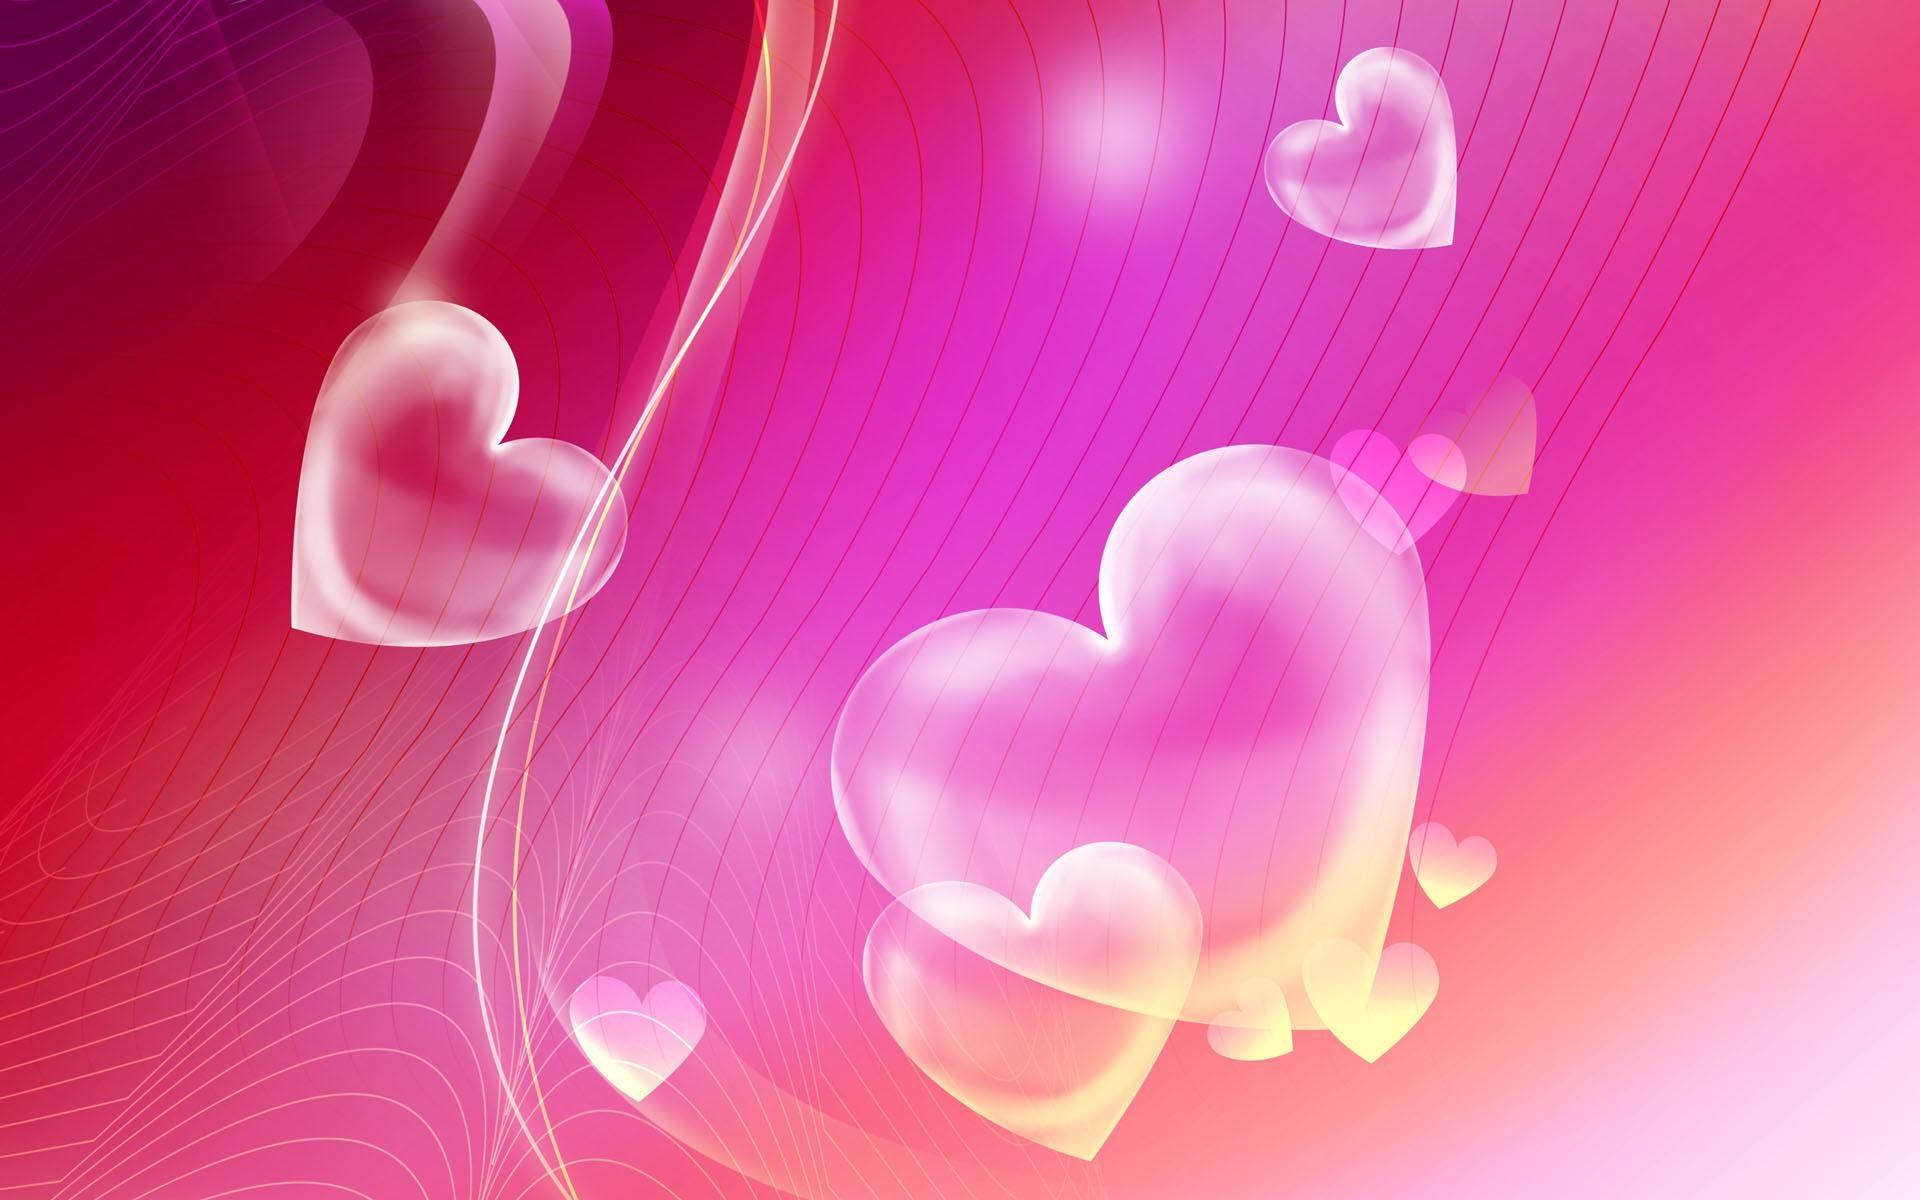 hearts desktop wallpaper - photo #45